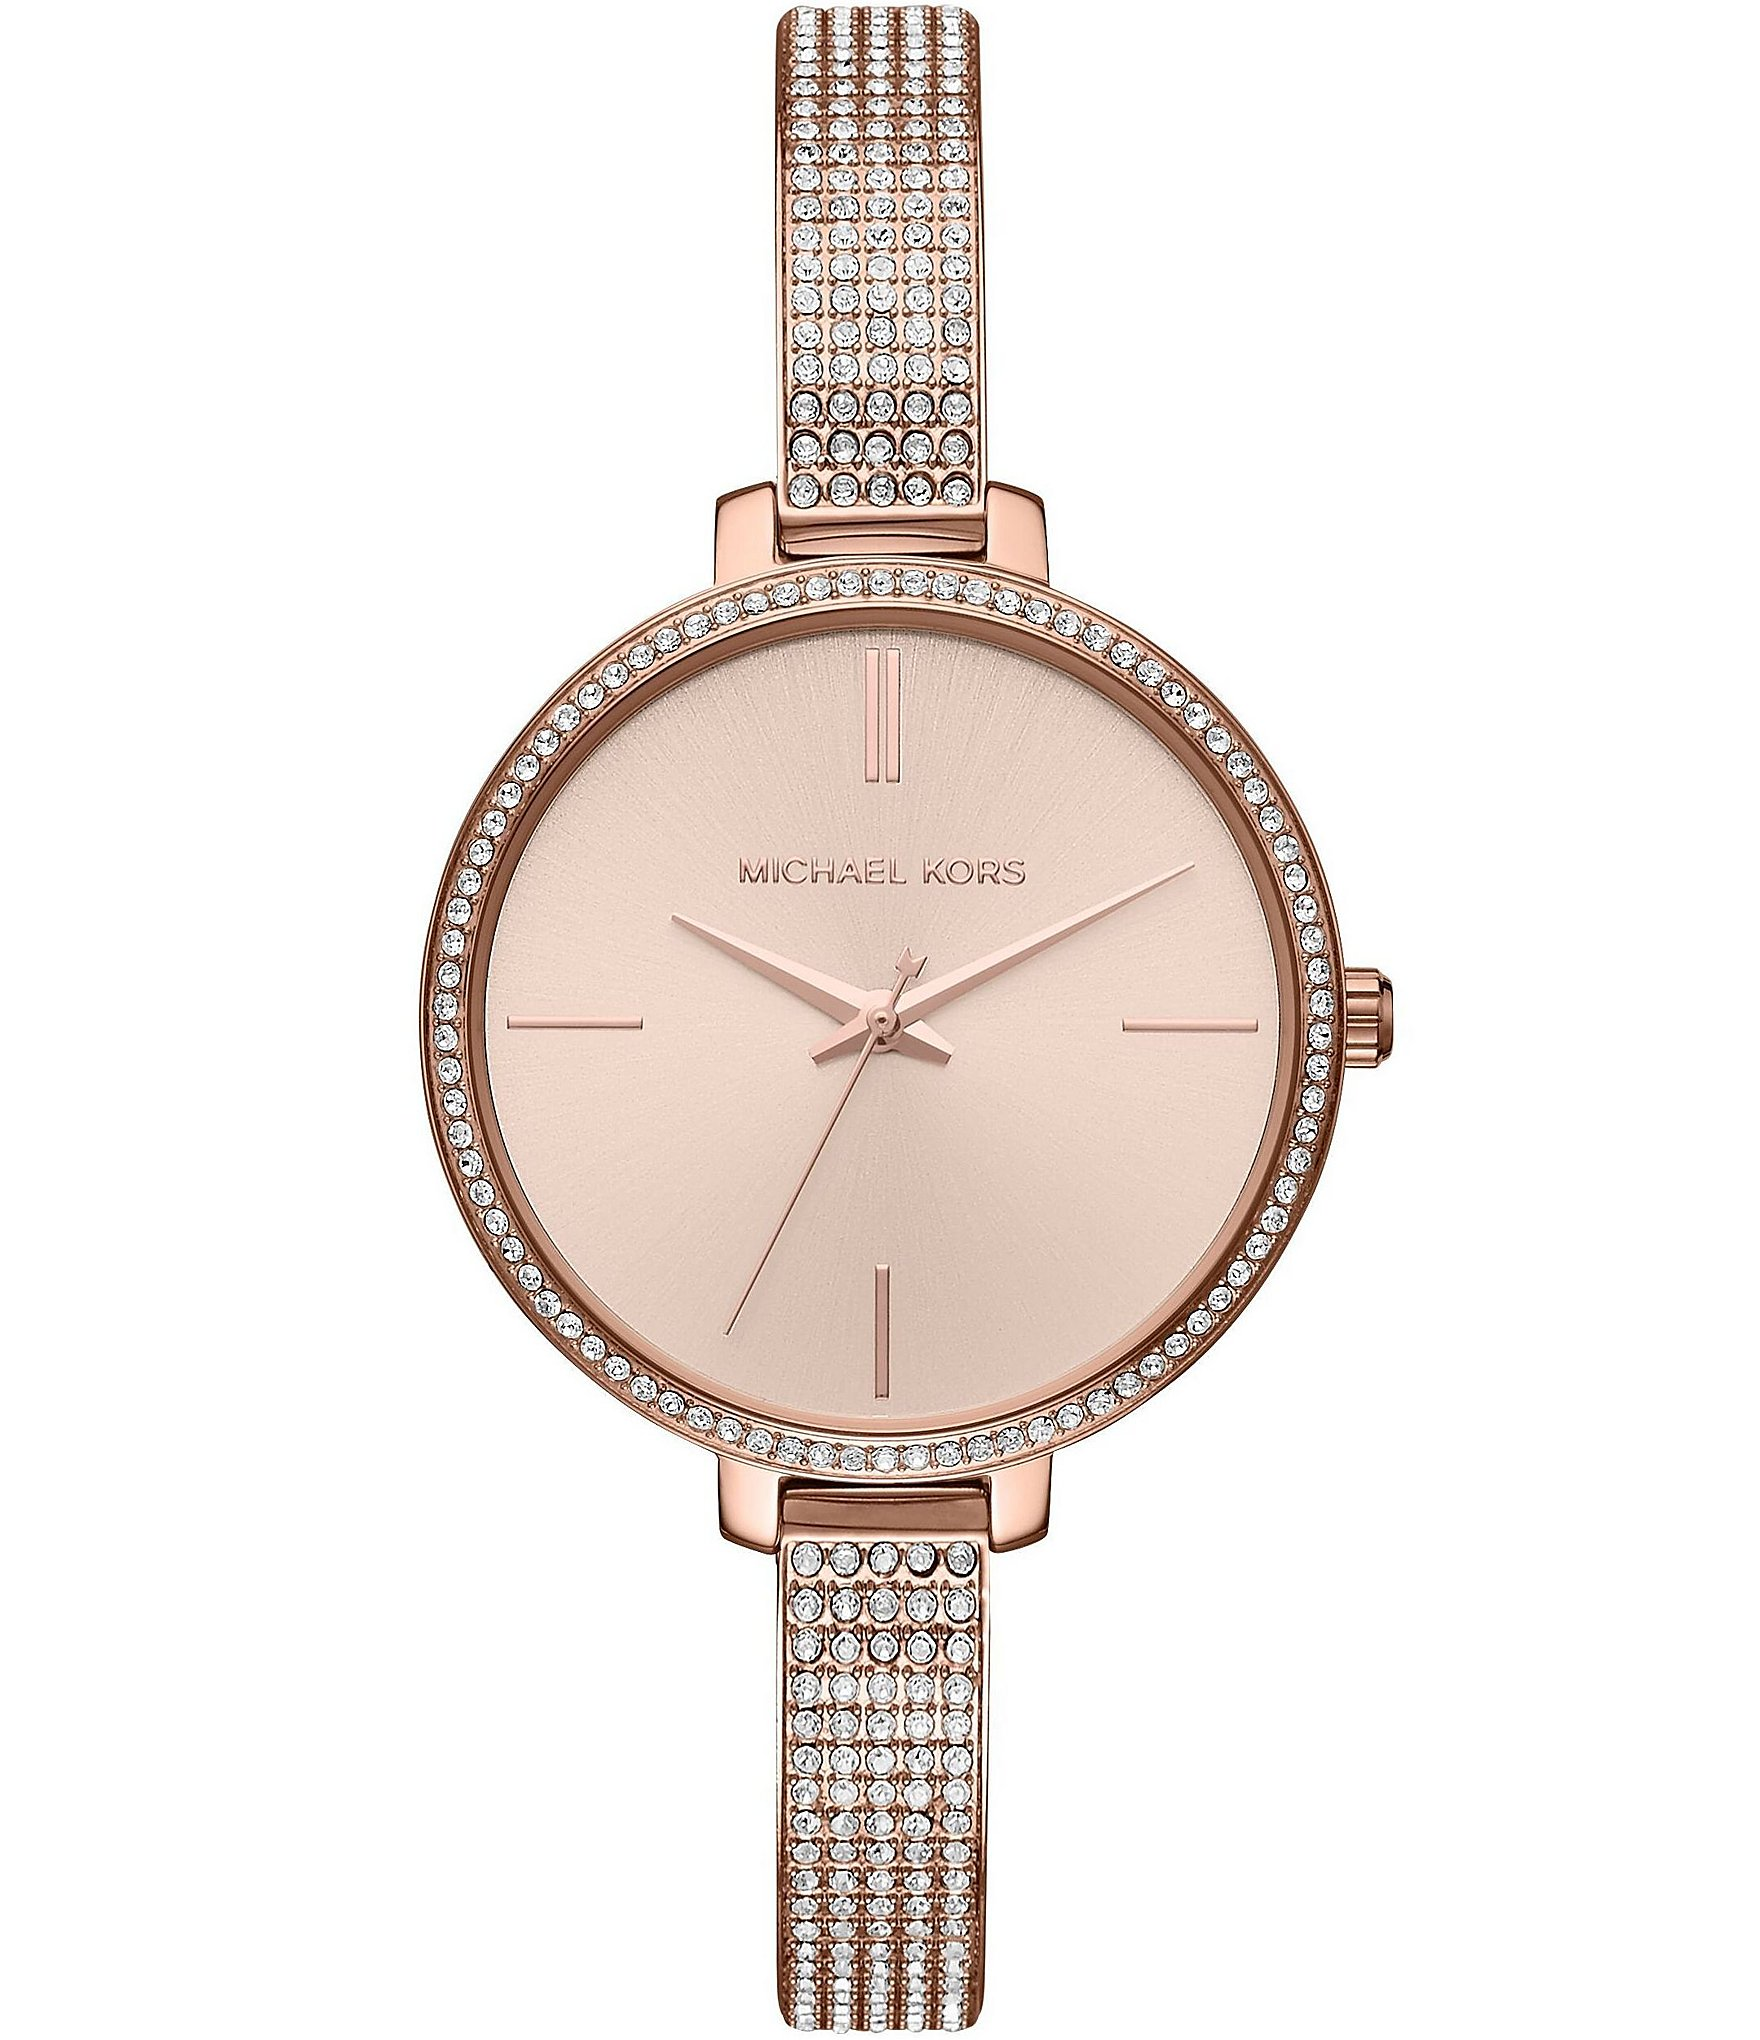 Michael Kors Watches for Men Women Dillards